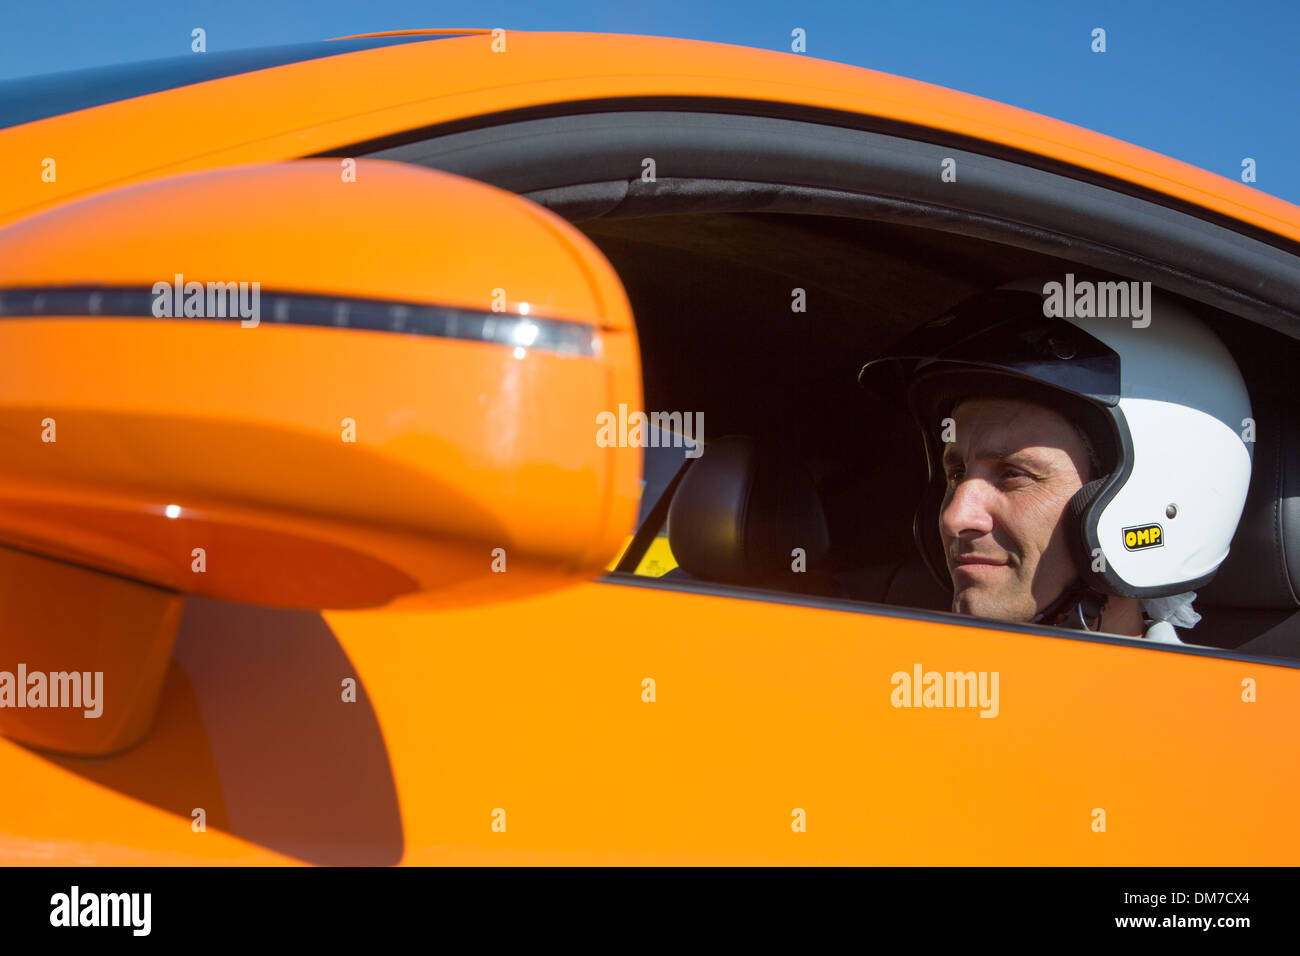 A PUPIL AT THE WHEEL OF AN AUDI R8, PRO'PULSION, DRIVING COURSES ON A RACE TRACK, DREUX, EURE-ET-LOIR (28), FRANCE - Stock Image